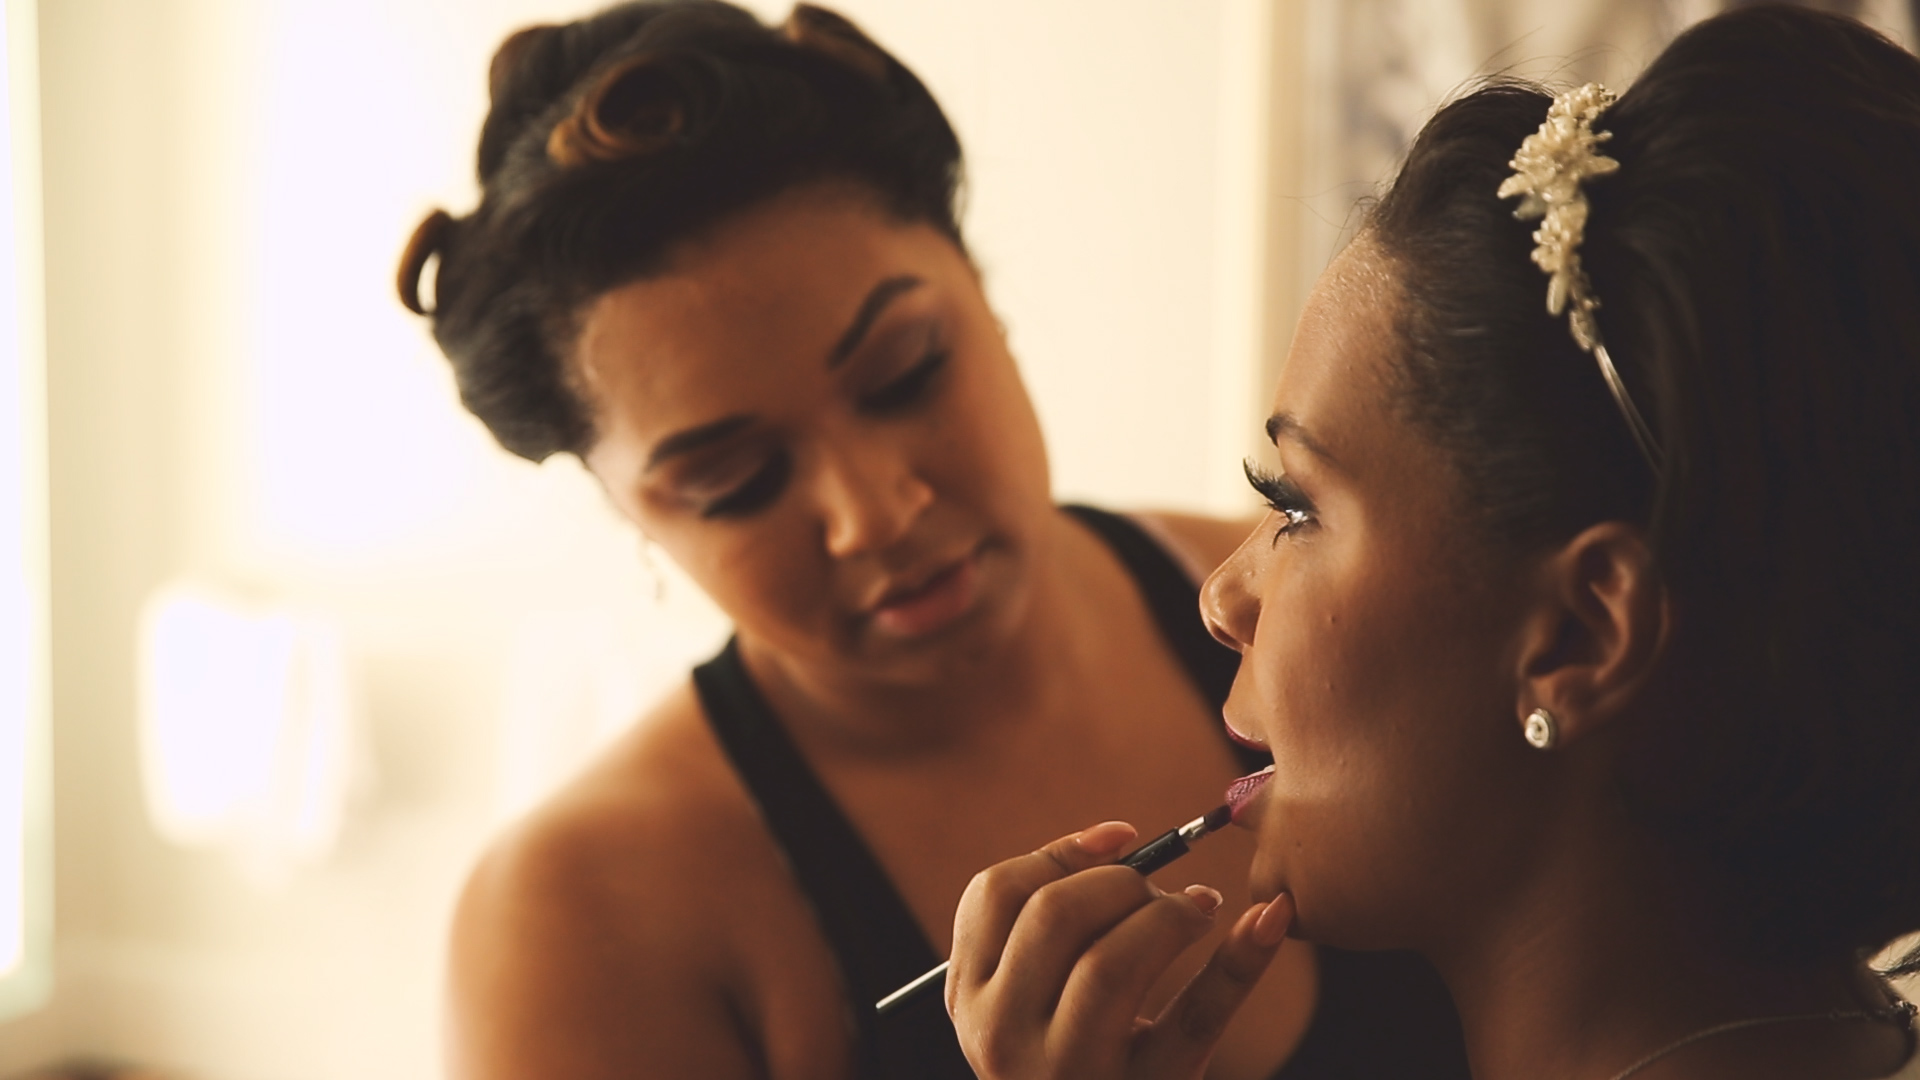 The bride and her bridesmaids' makeup was perfect!